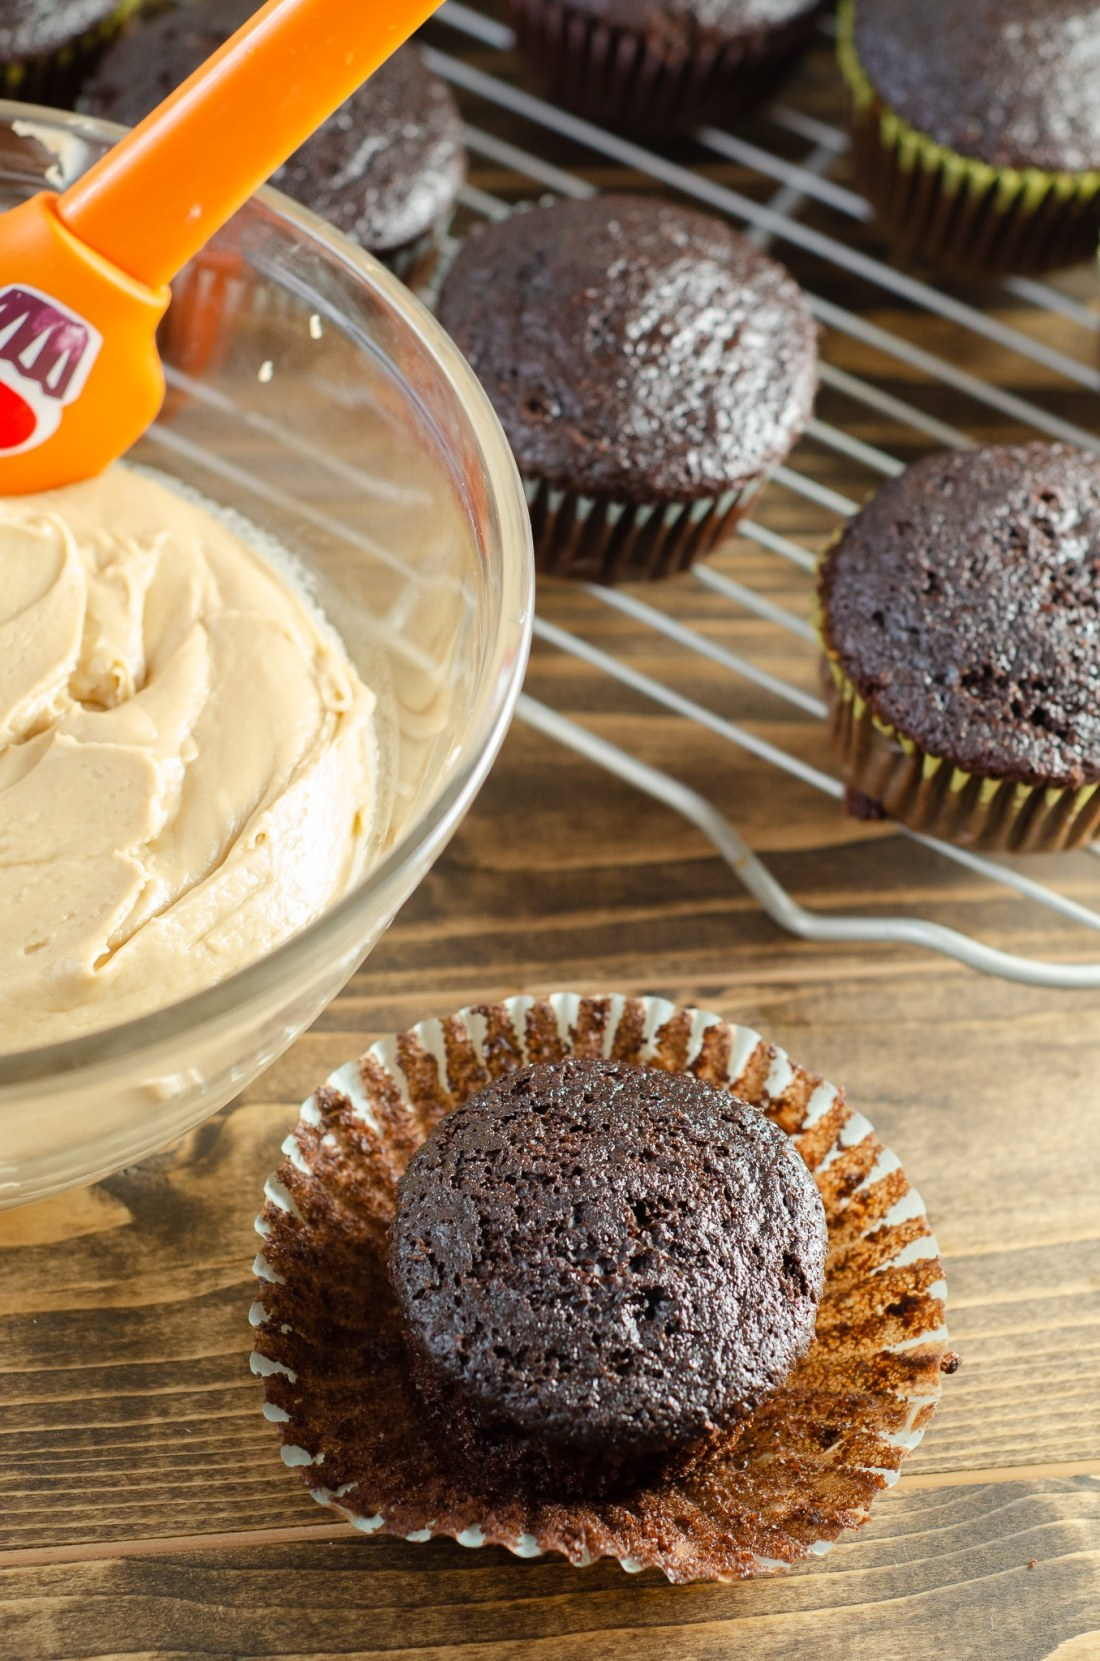 Super Moist Chocolate Cupcakes From Scratch Salted Caramel Frosting Ready. Celebrate any occasion with these decadent Super Moist Chocolate Cupcakes From Scratch with Salted Caramel Frosting and Caramel Filled Center. This homemade recipe is so easy to create, the kids can join in.